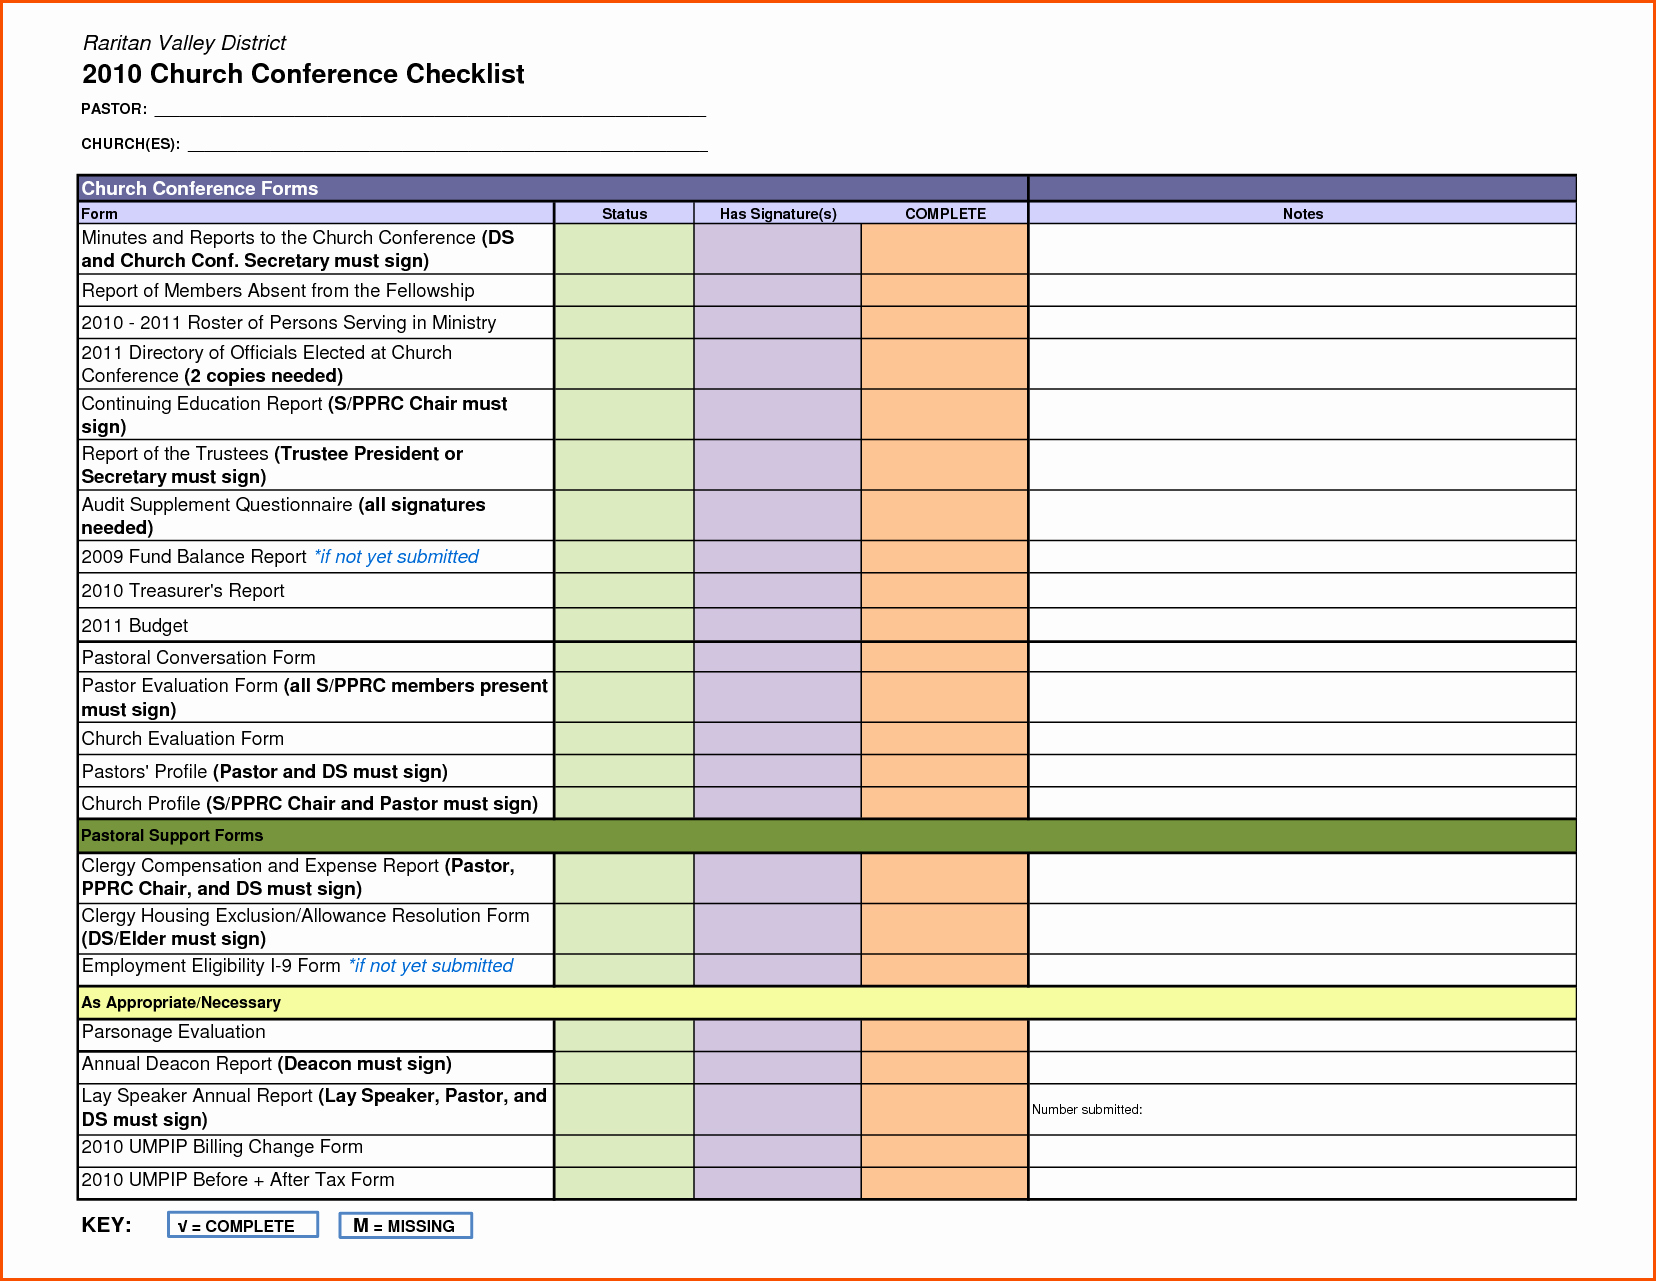 Event Planning Checklist Template Excel Lovely Checklist Conference Checklist Template